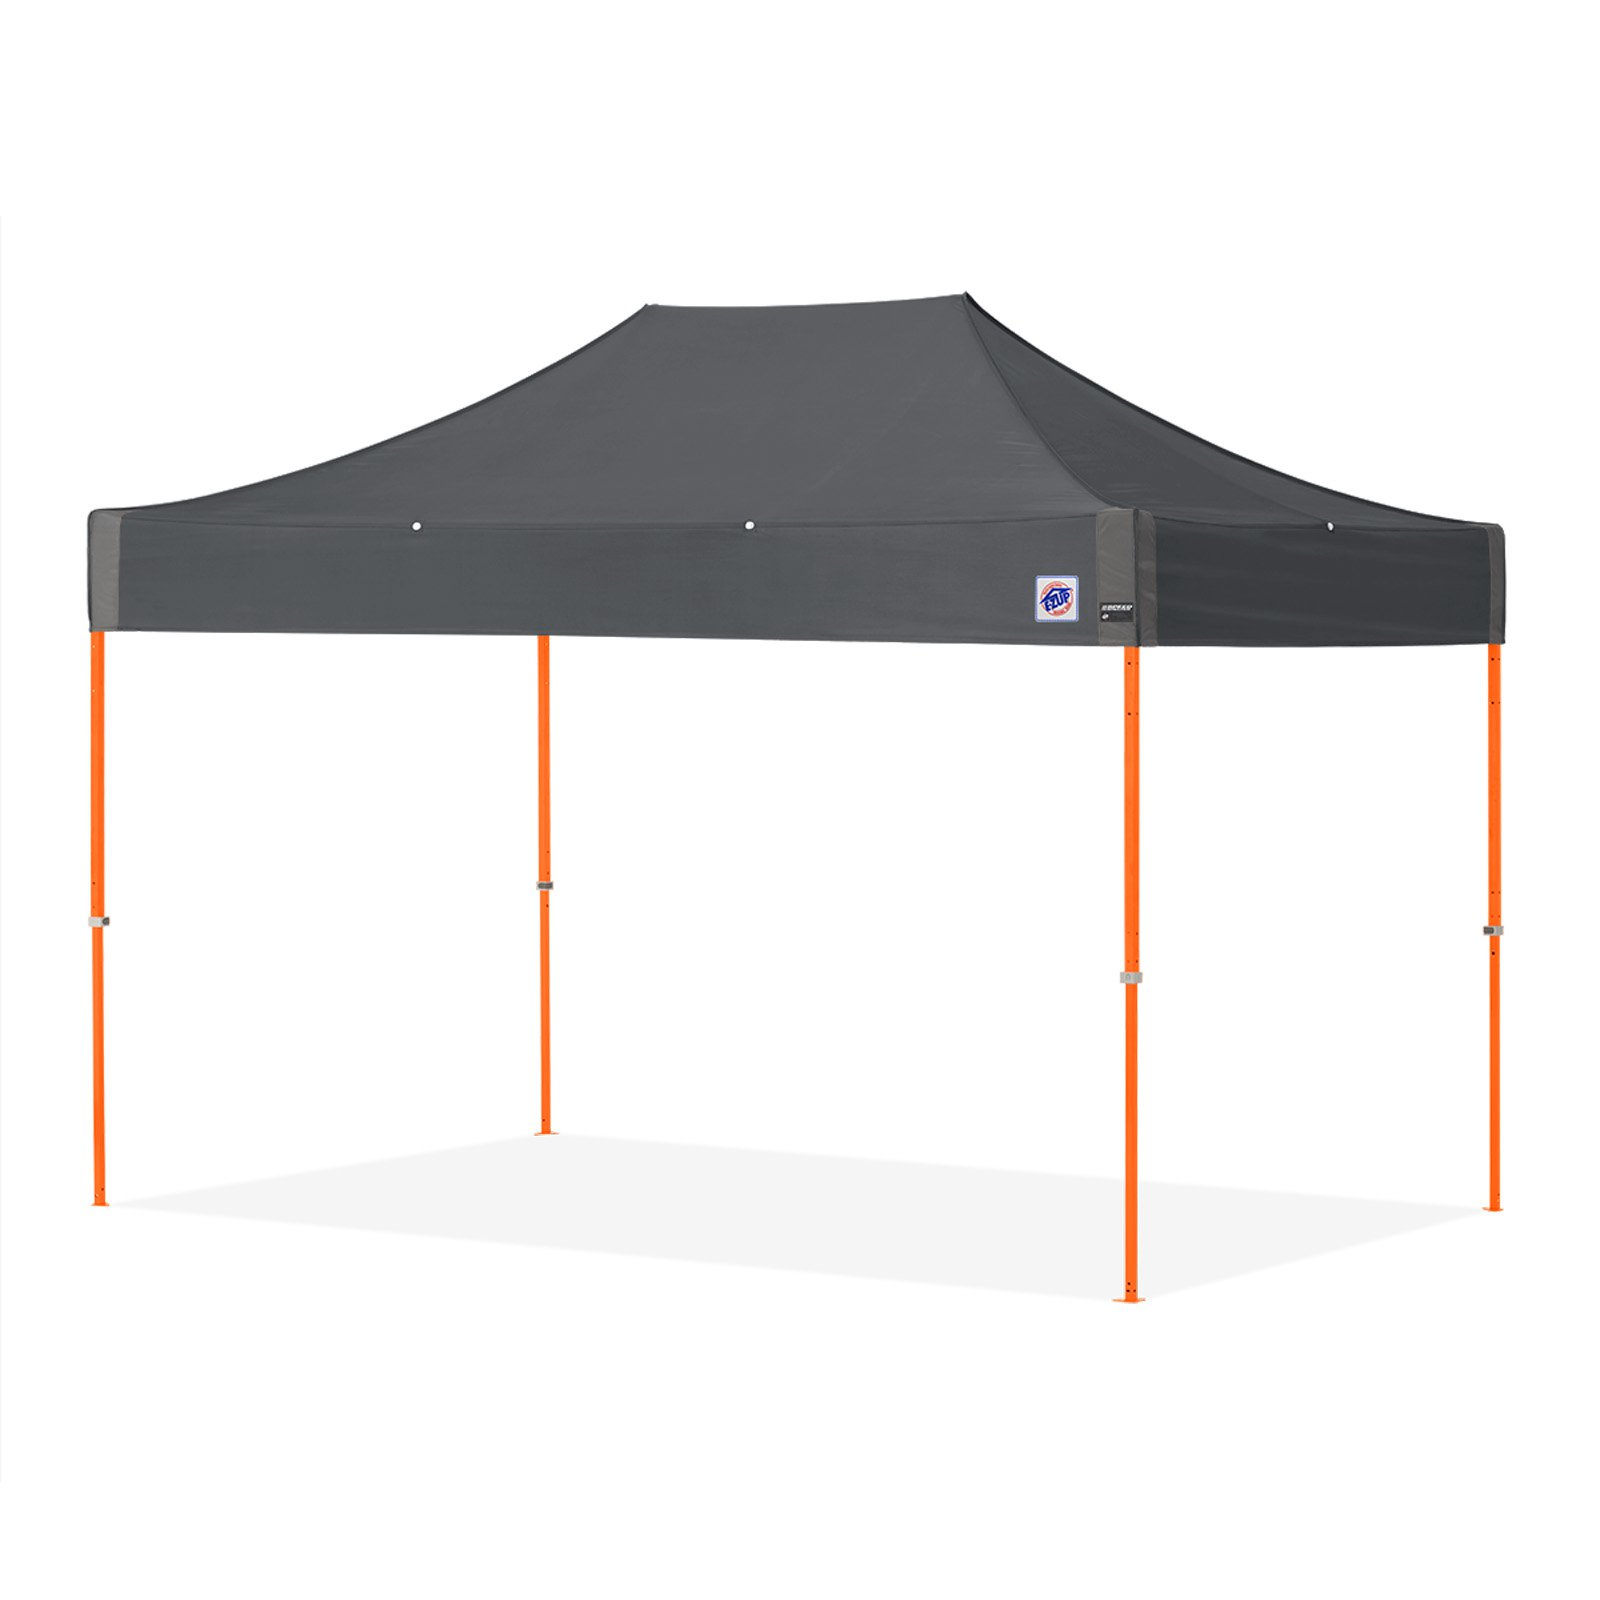 E-Z UP Speed Shelter Canopy with Carbon Steel Frame by